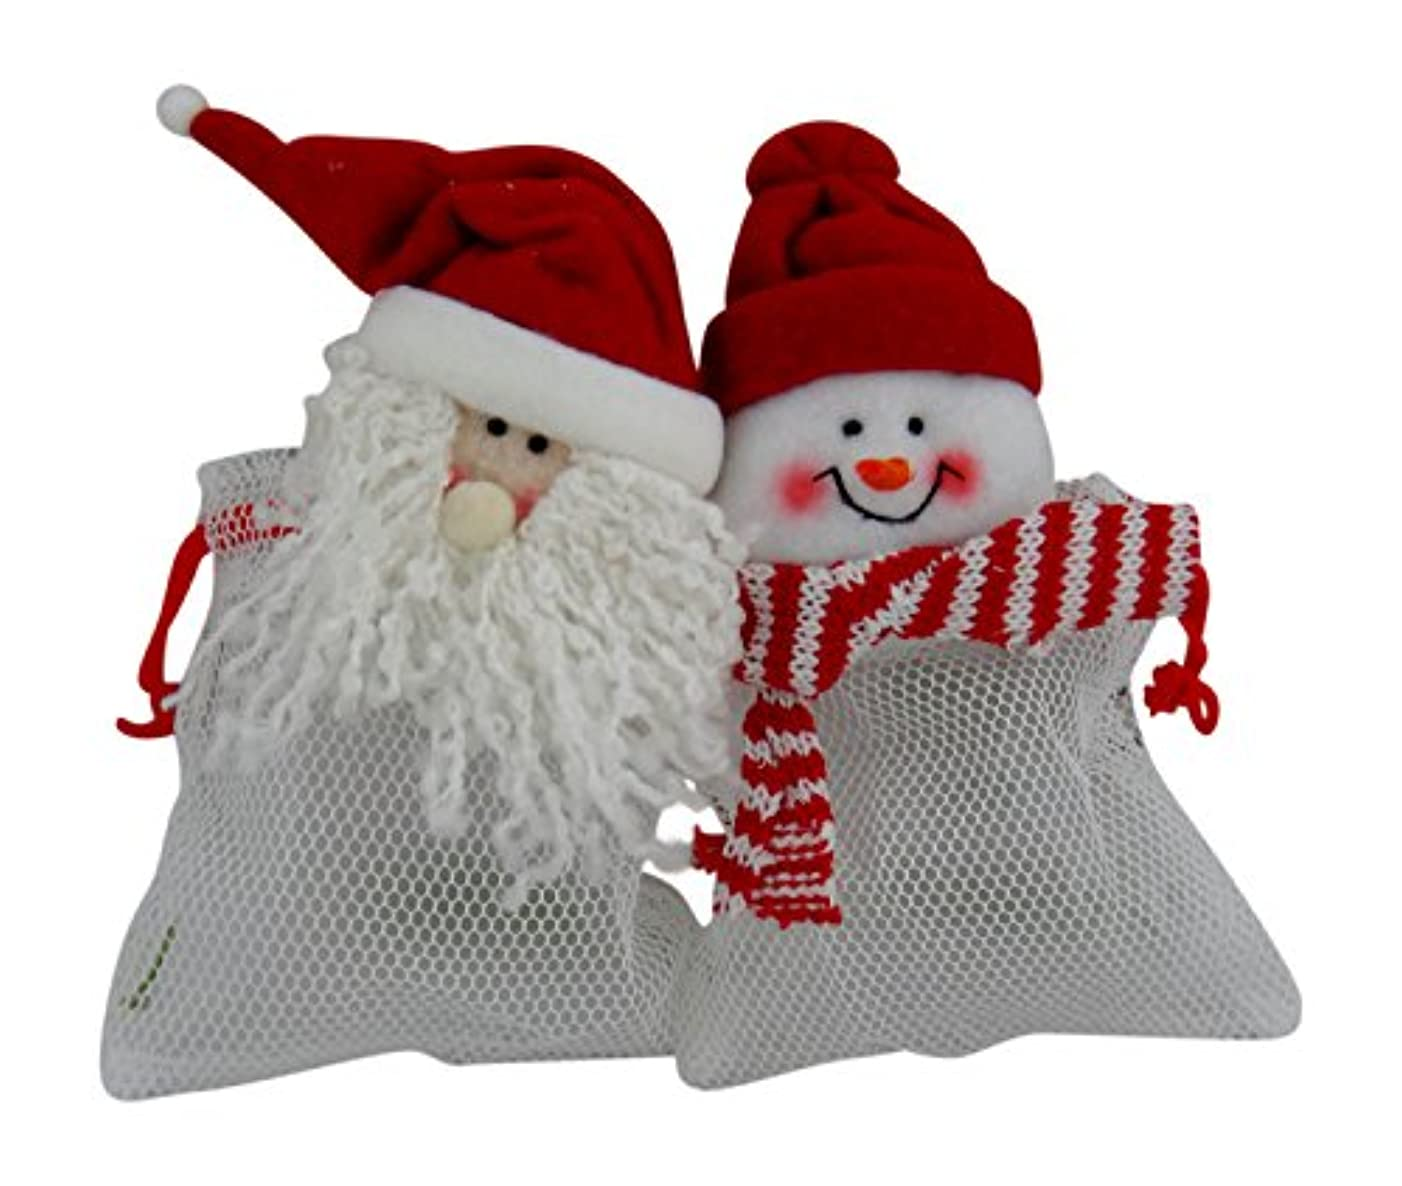 Christmas Santa & Snowman Candy Treat Gift Bags, 3 Sets of 2 Packs